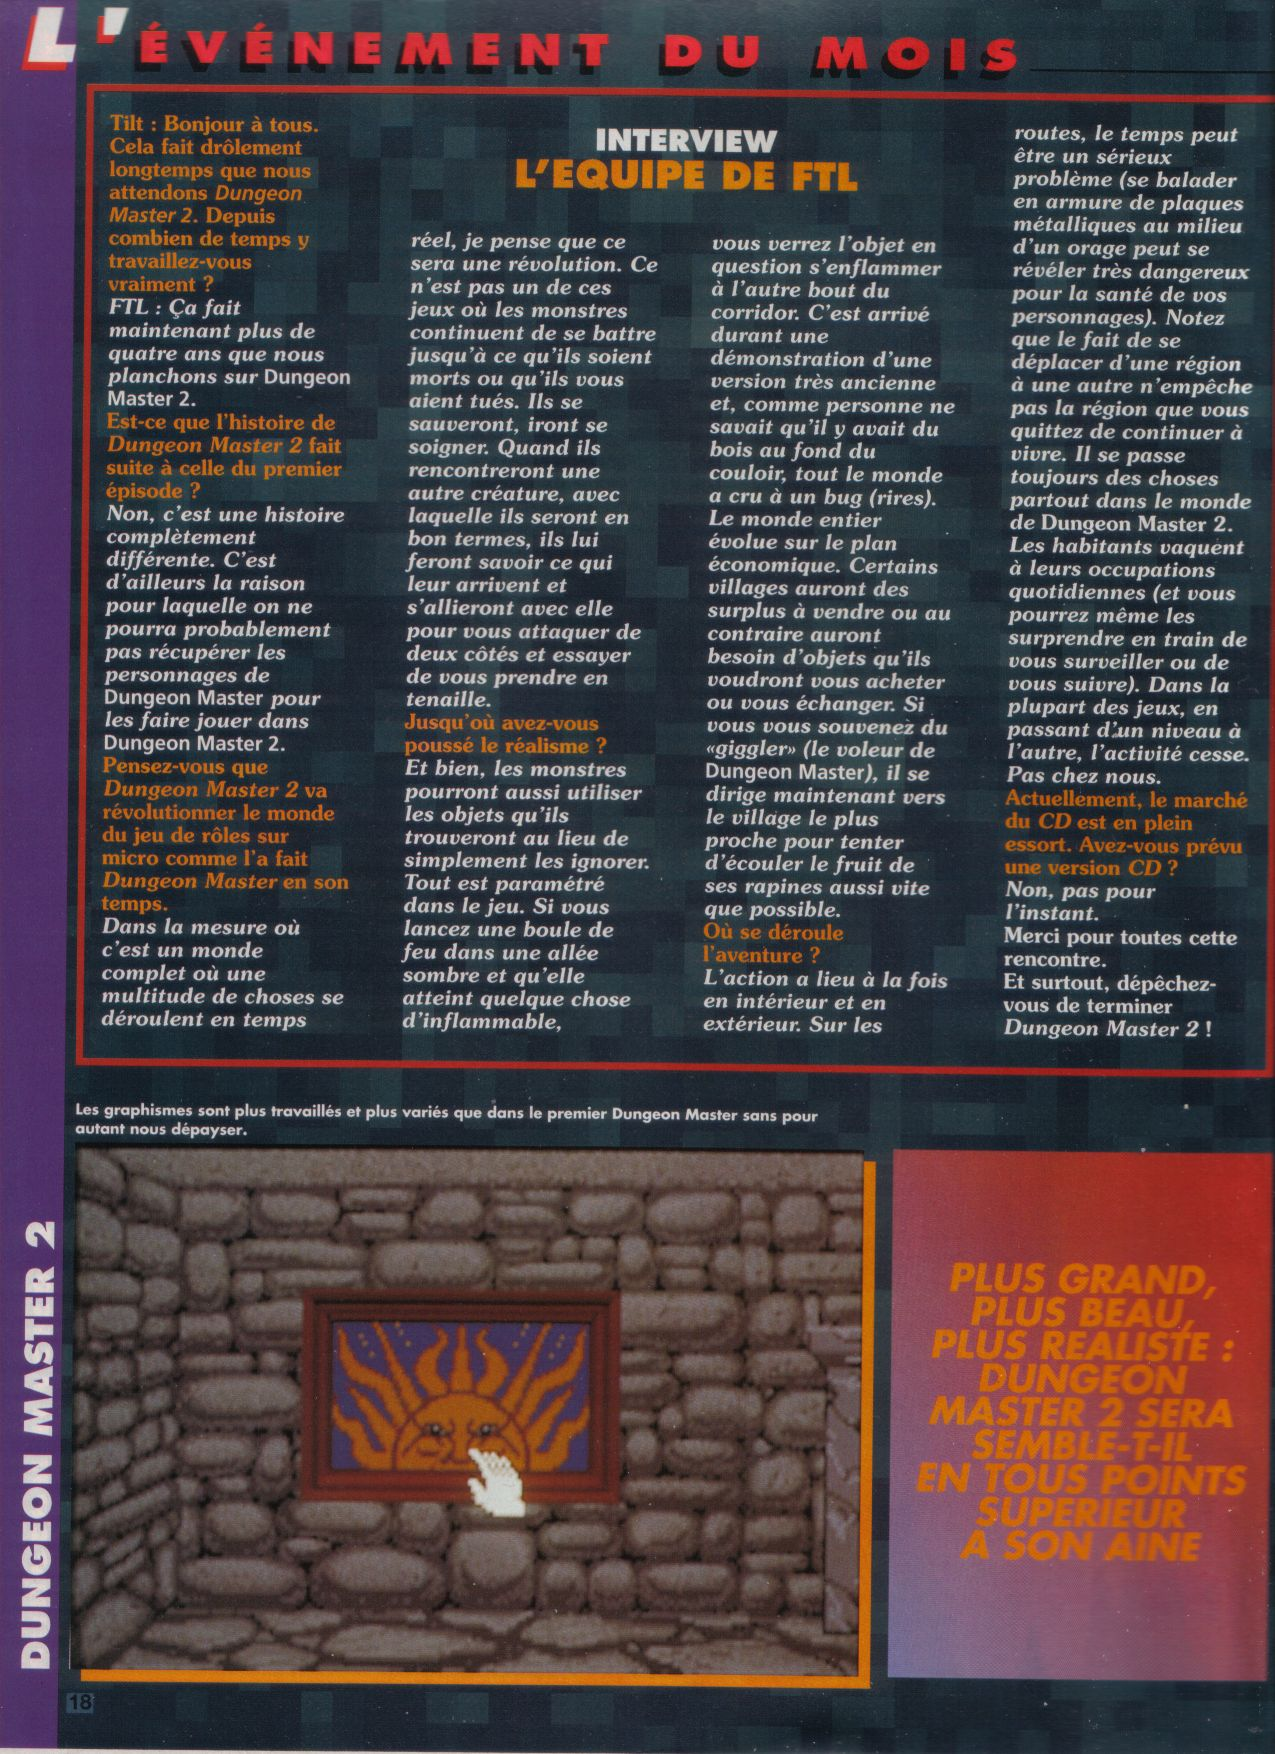 Dungeon Master II for PC / Amiga / Atari ST Preview published in French magazine 'Tilt', Issue #117, September 1993, Page 18